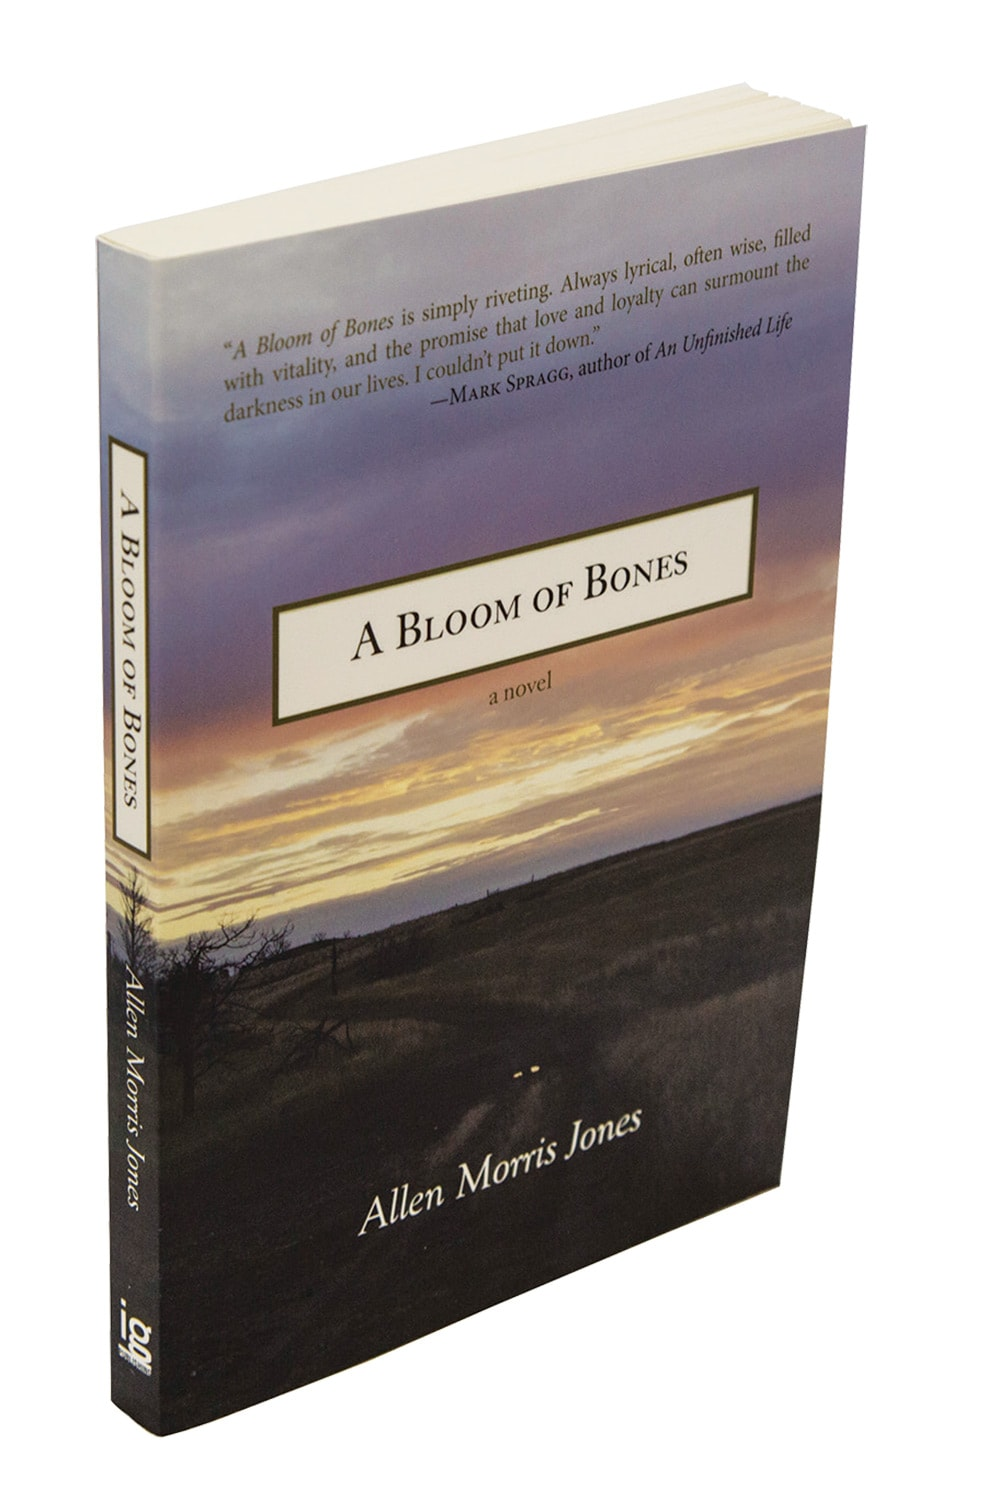 A Bloom of Bones by Allen Morris Jones